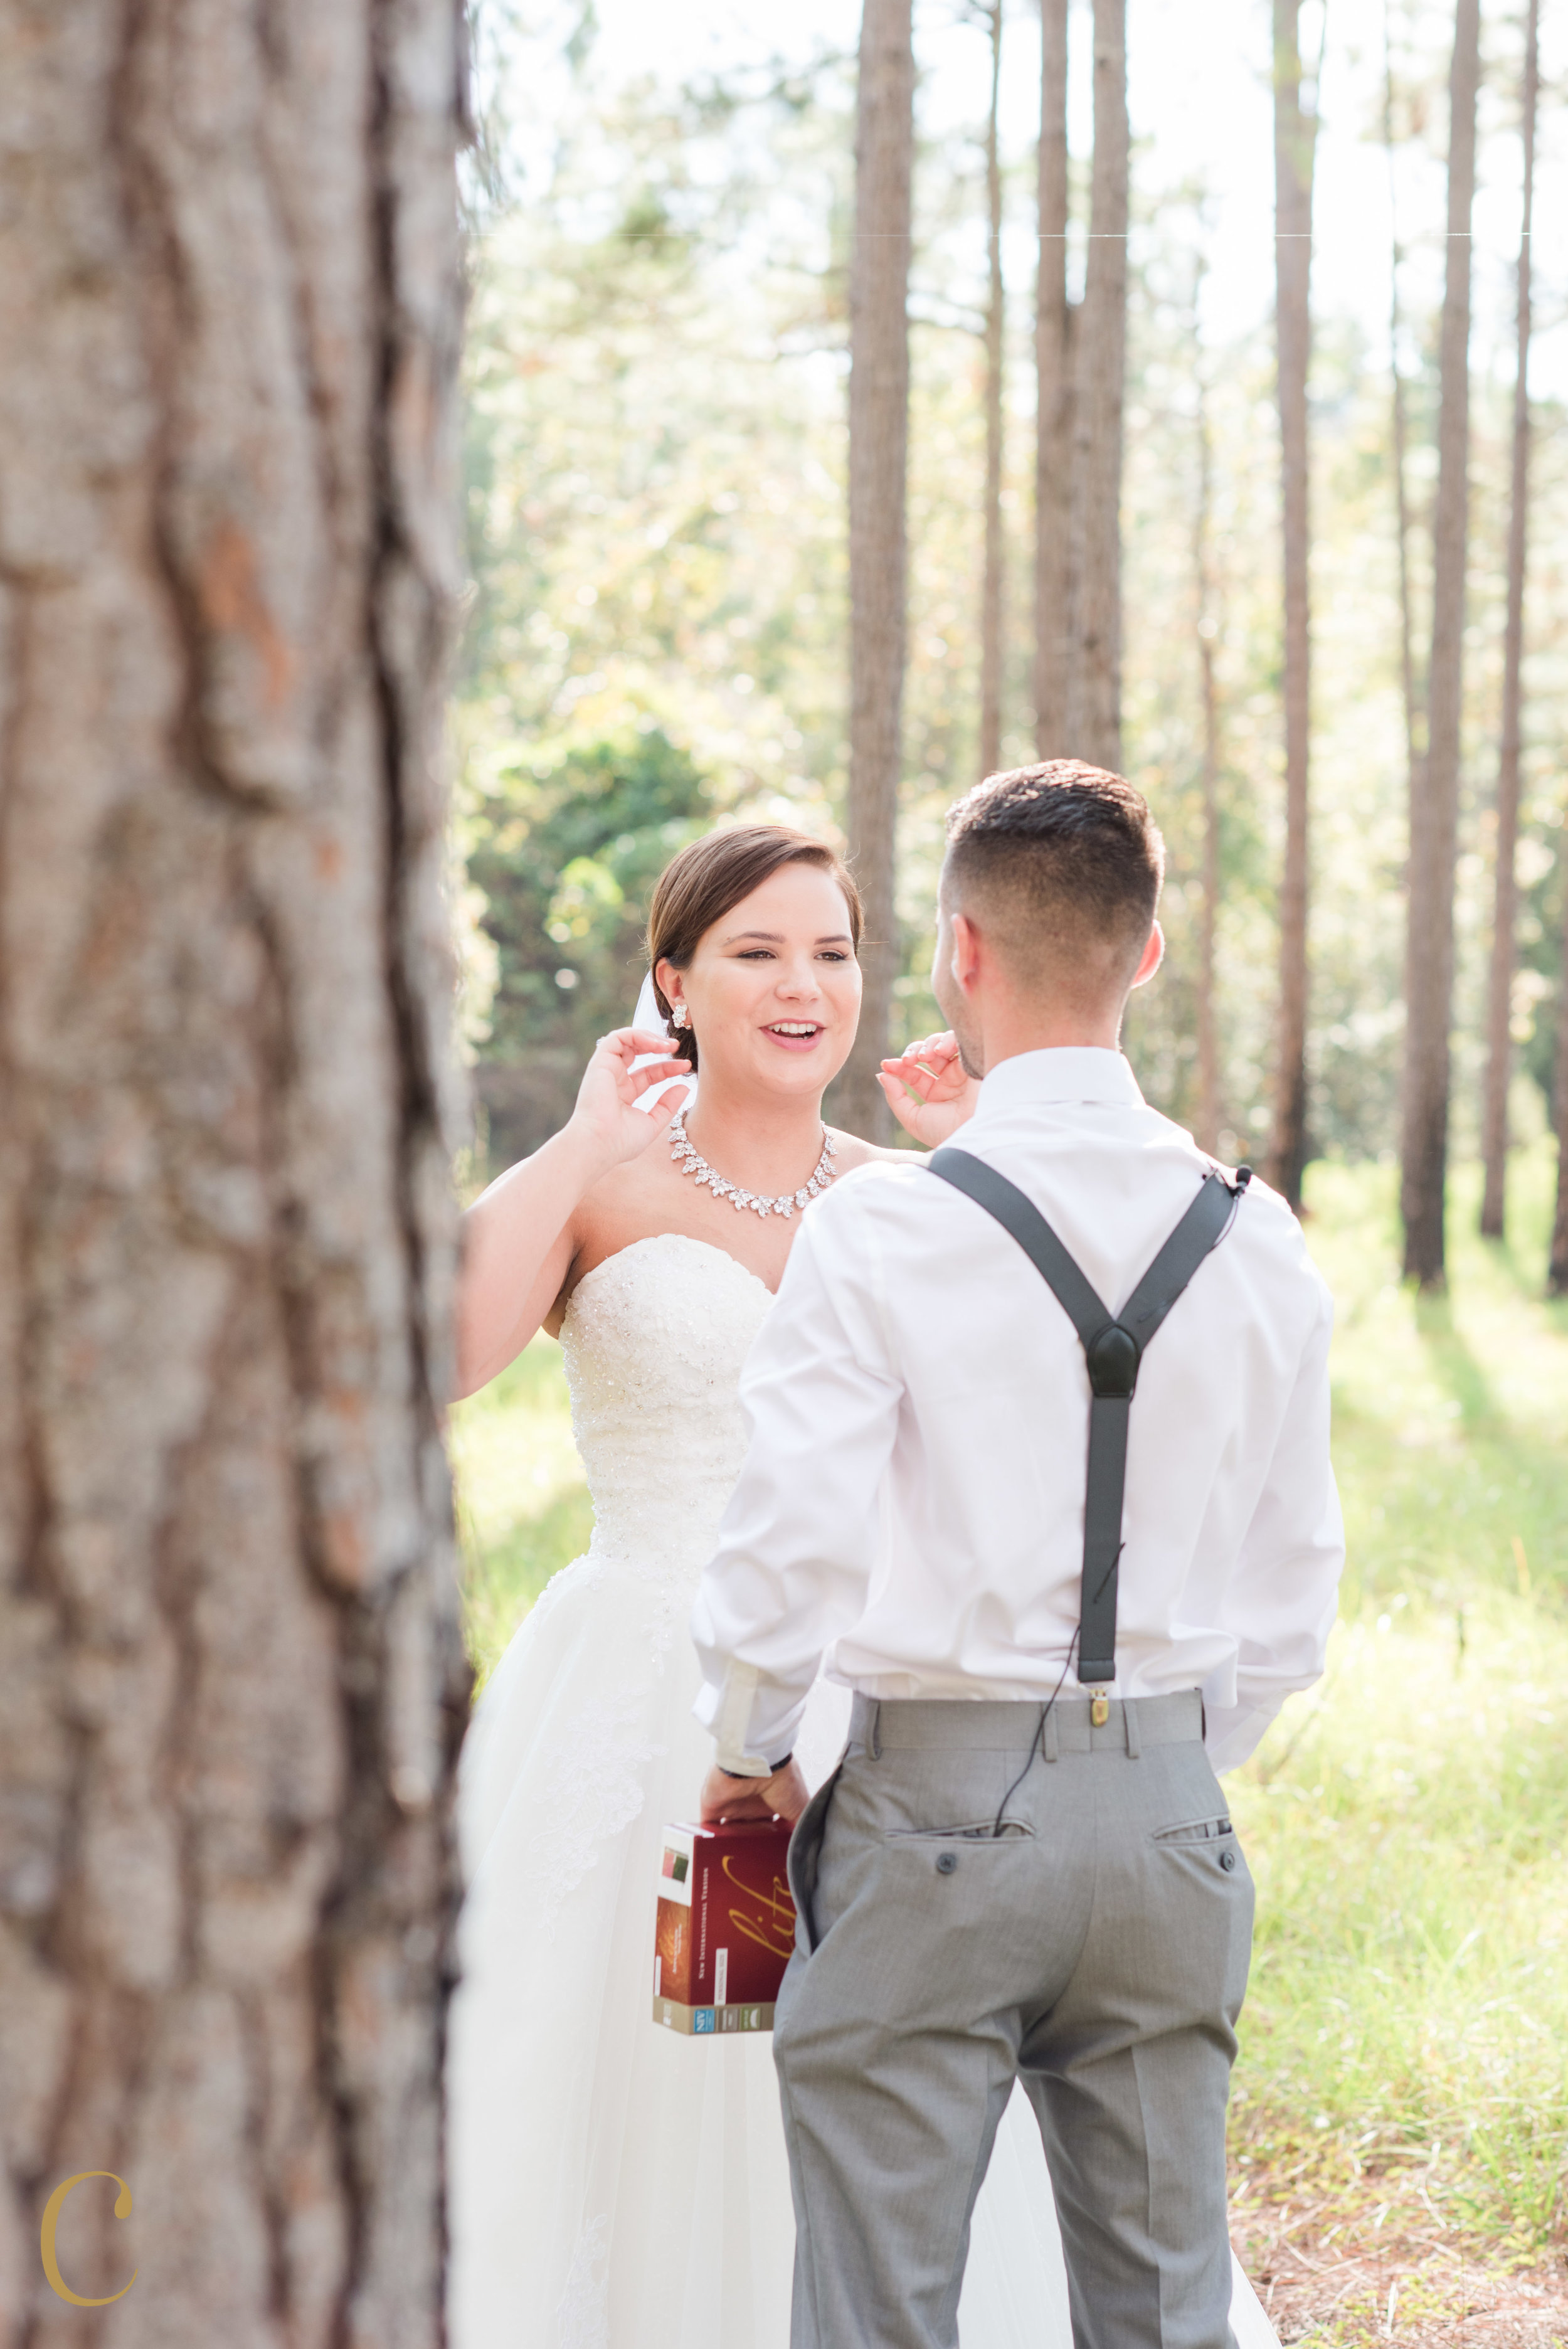 ©christineaustinphotography_jarred_hannah_wedding-8.jpg